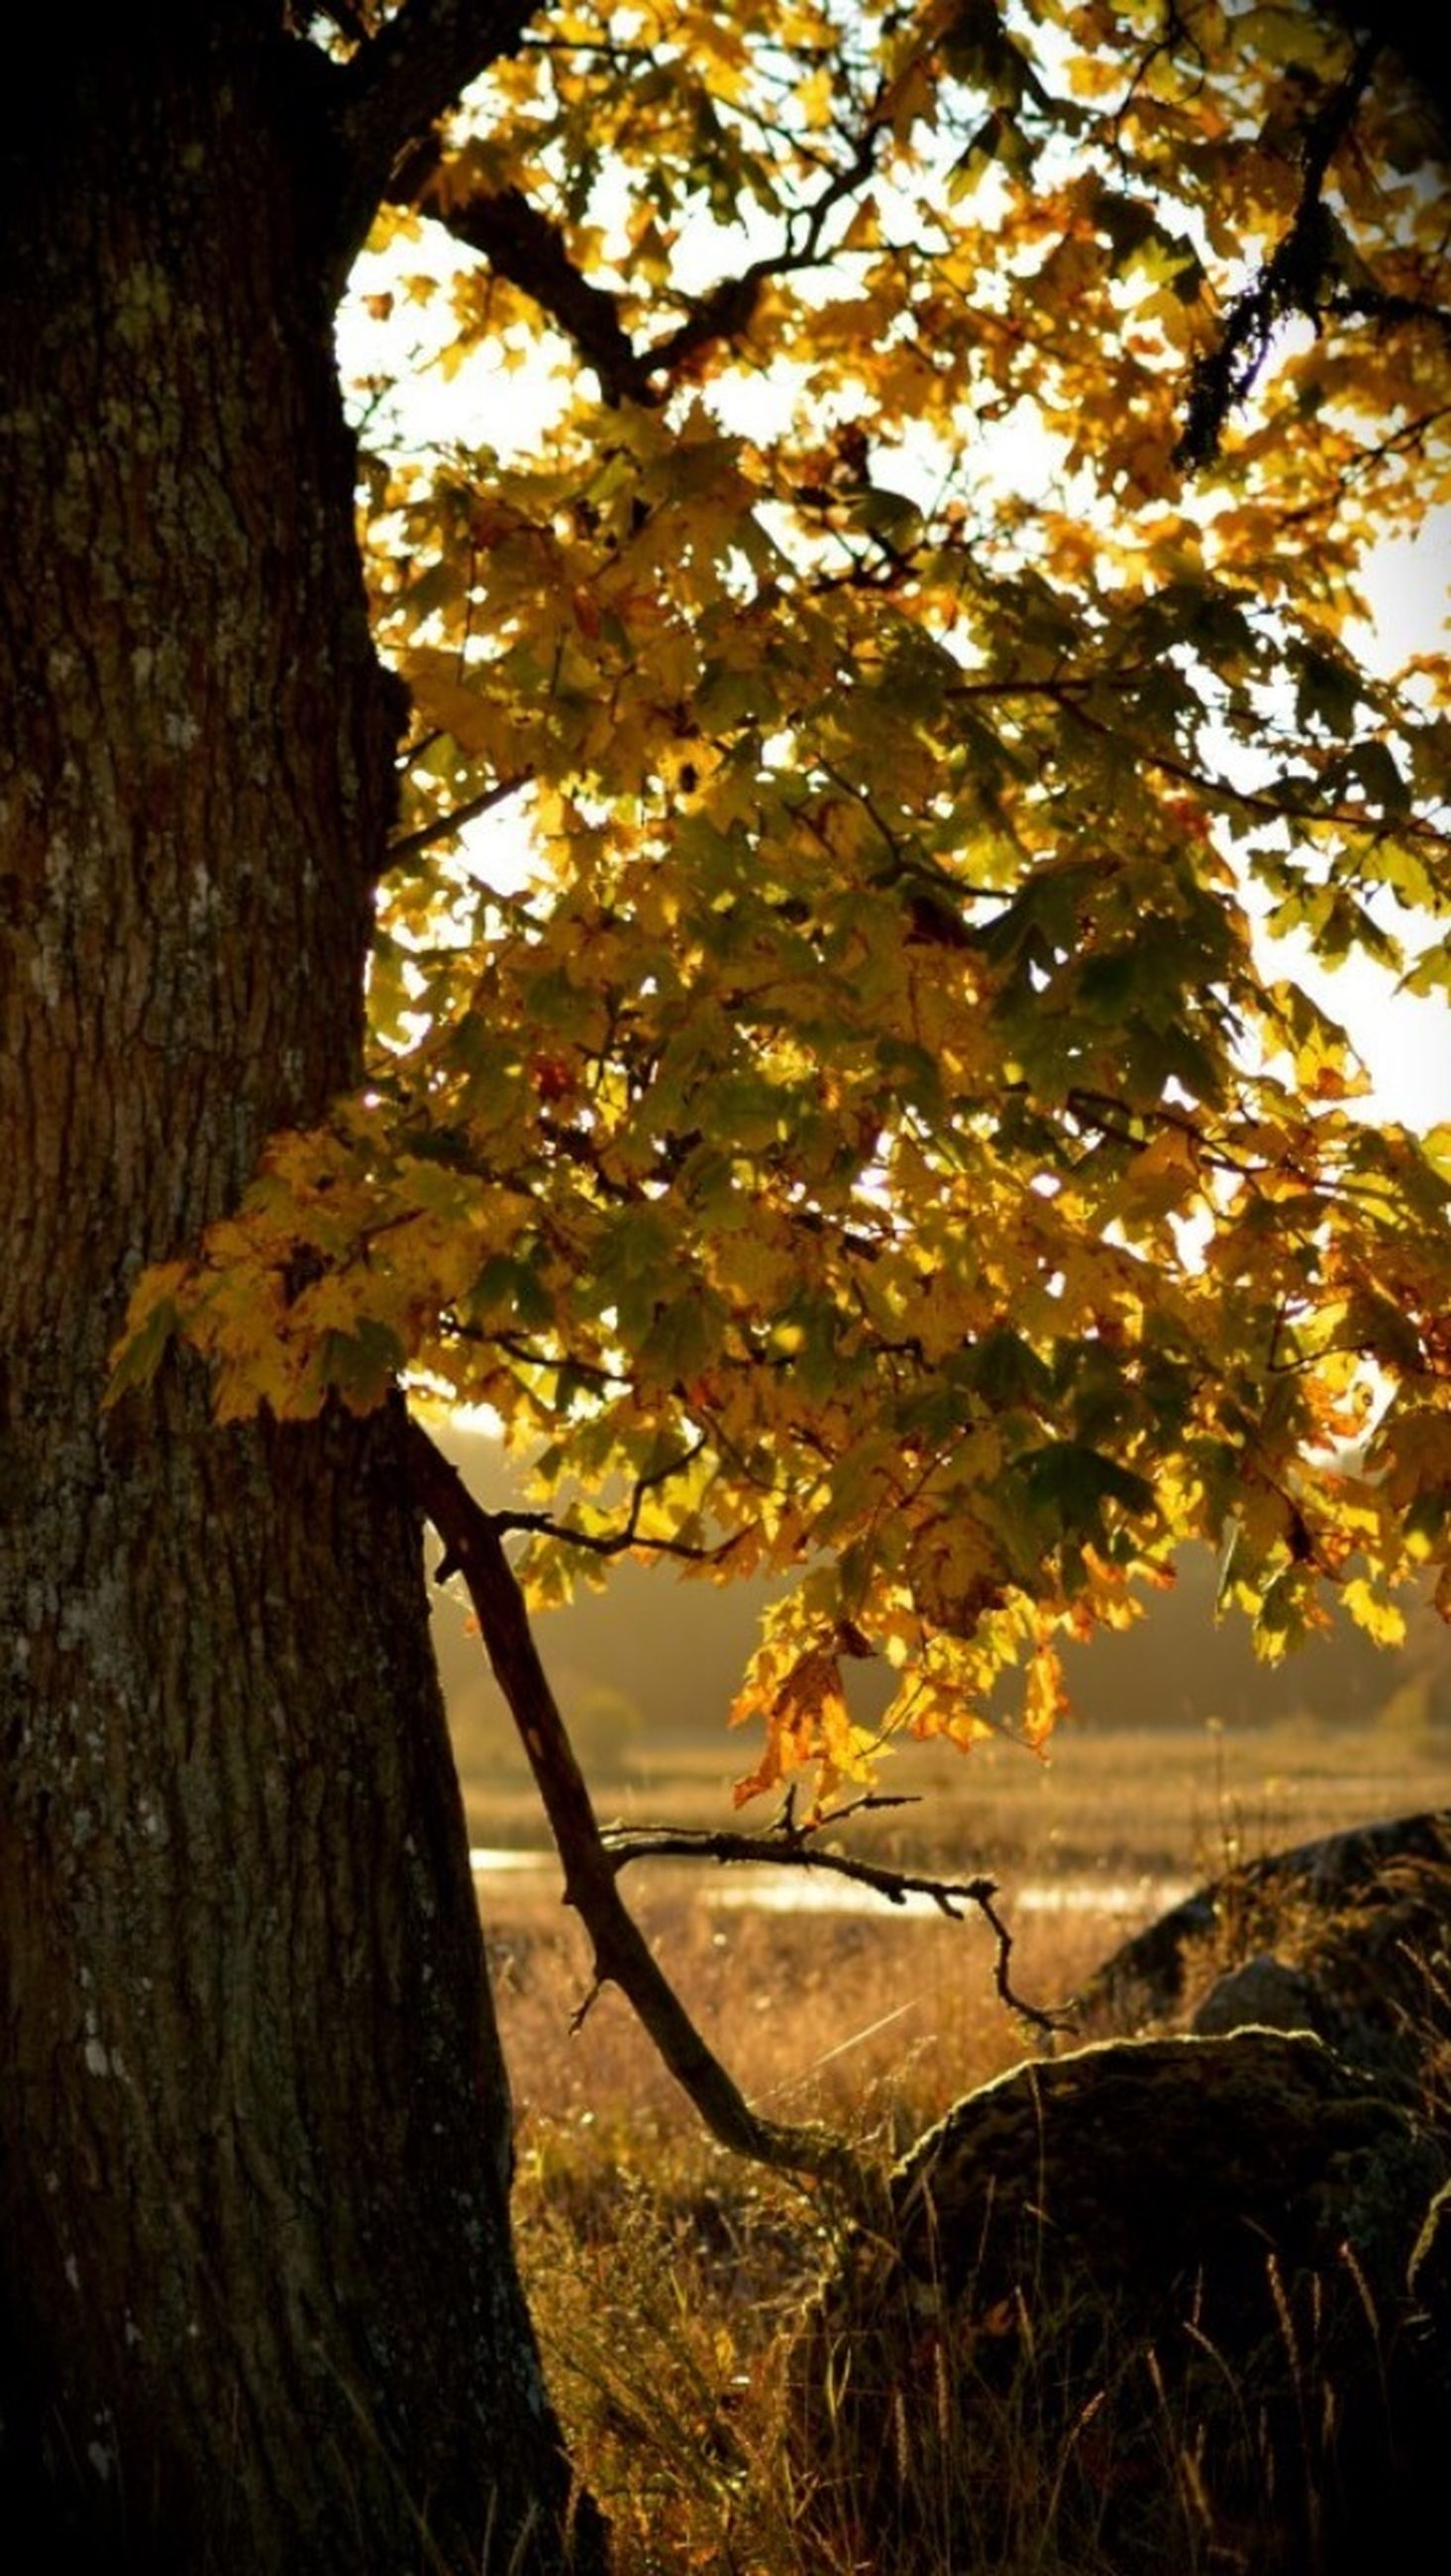 branch, tree, water, nature, tranquility, tree trunk, beauty in nature, growth, scenics, tranquil scene, sunlight, sunset, lake, leaf, outdoors, no people, plant, yellow, day, focus on foreground